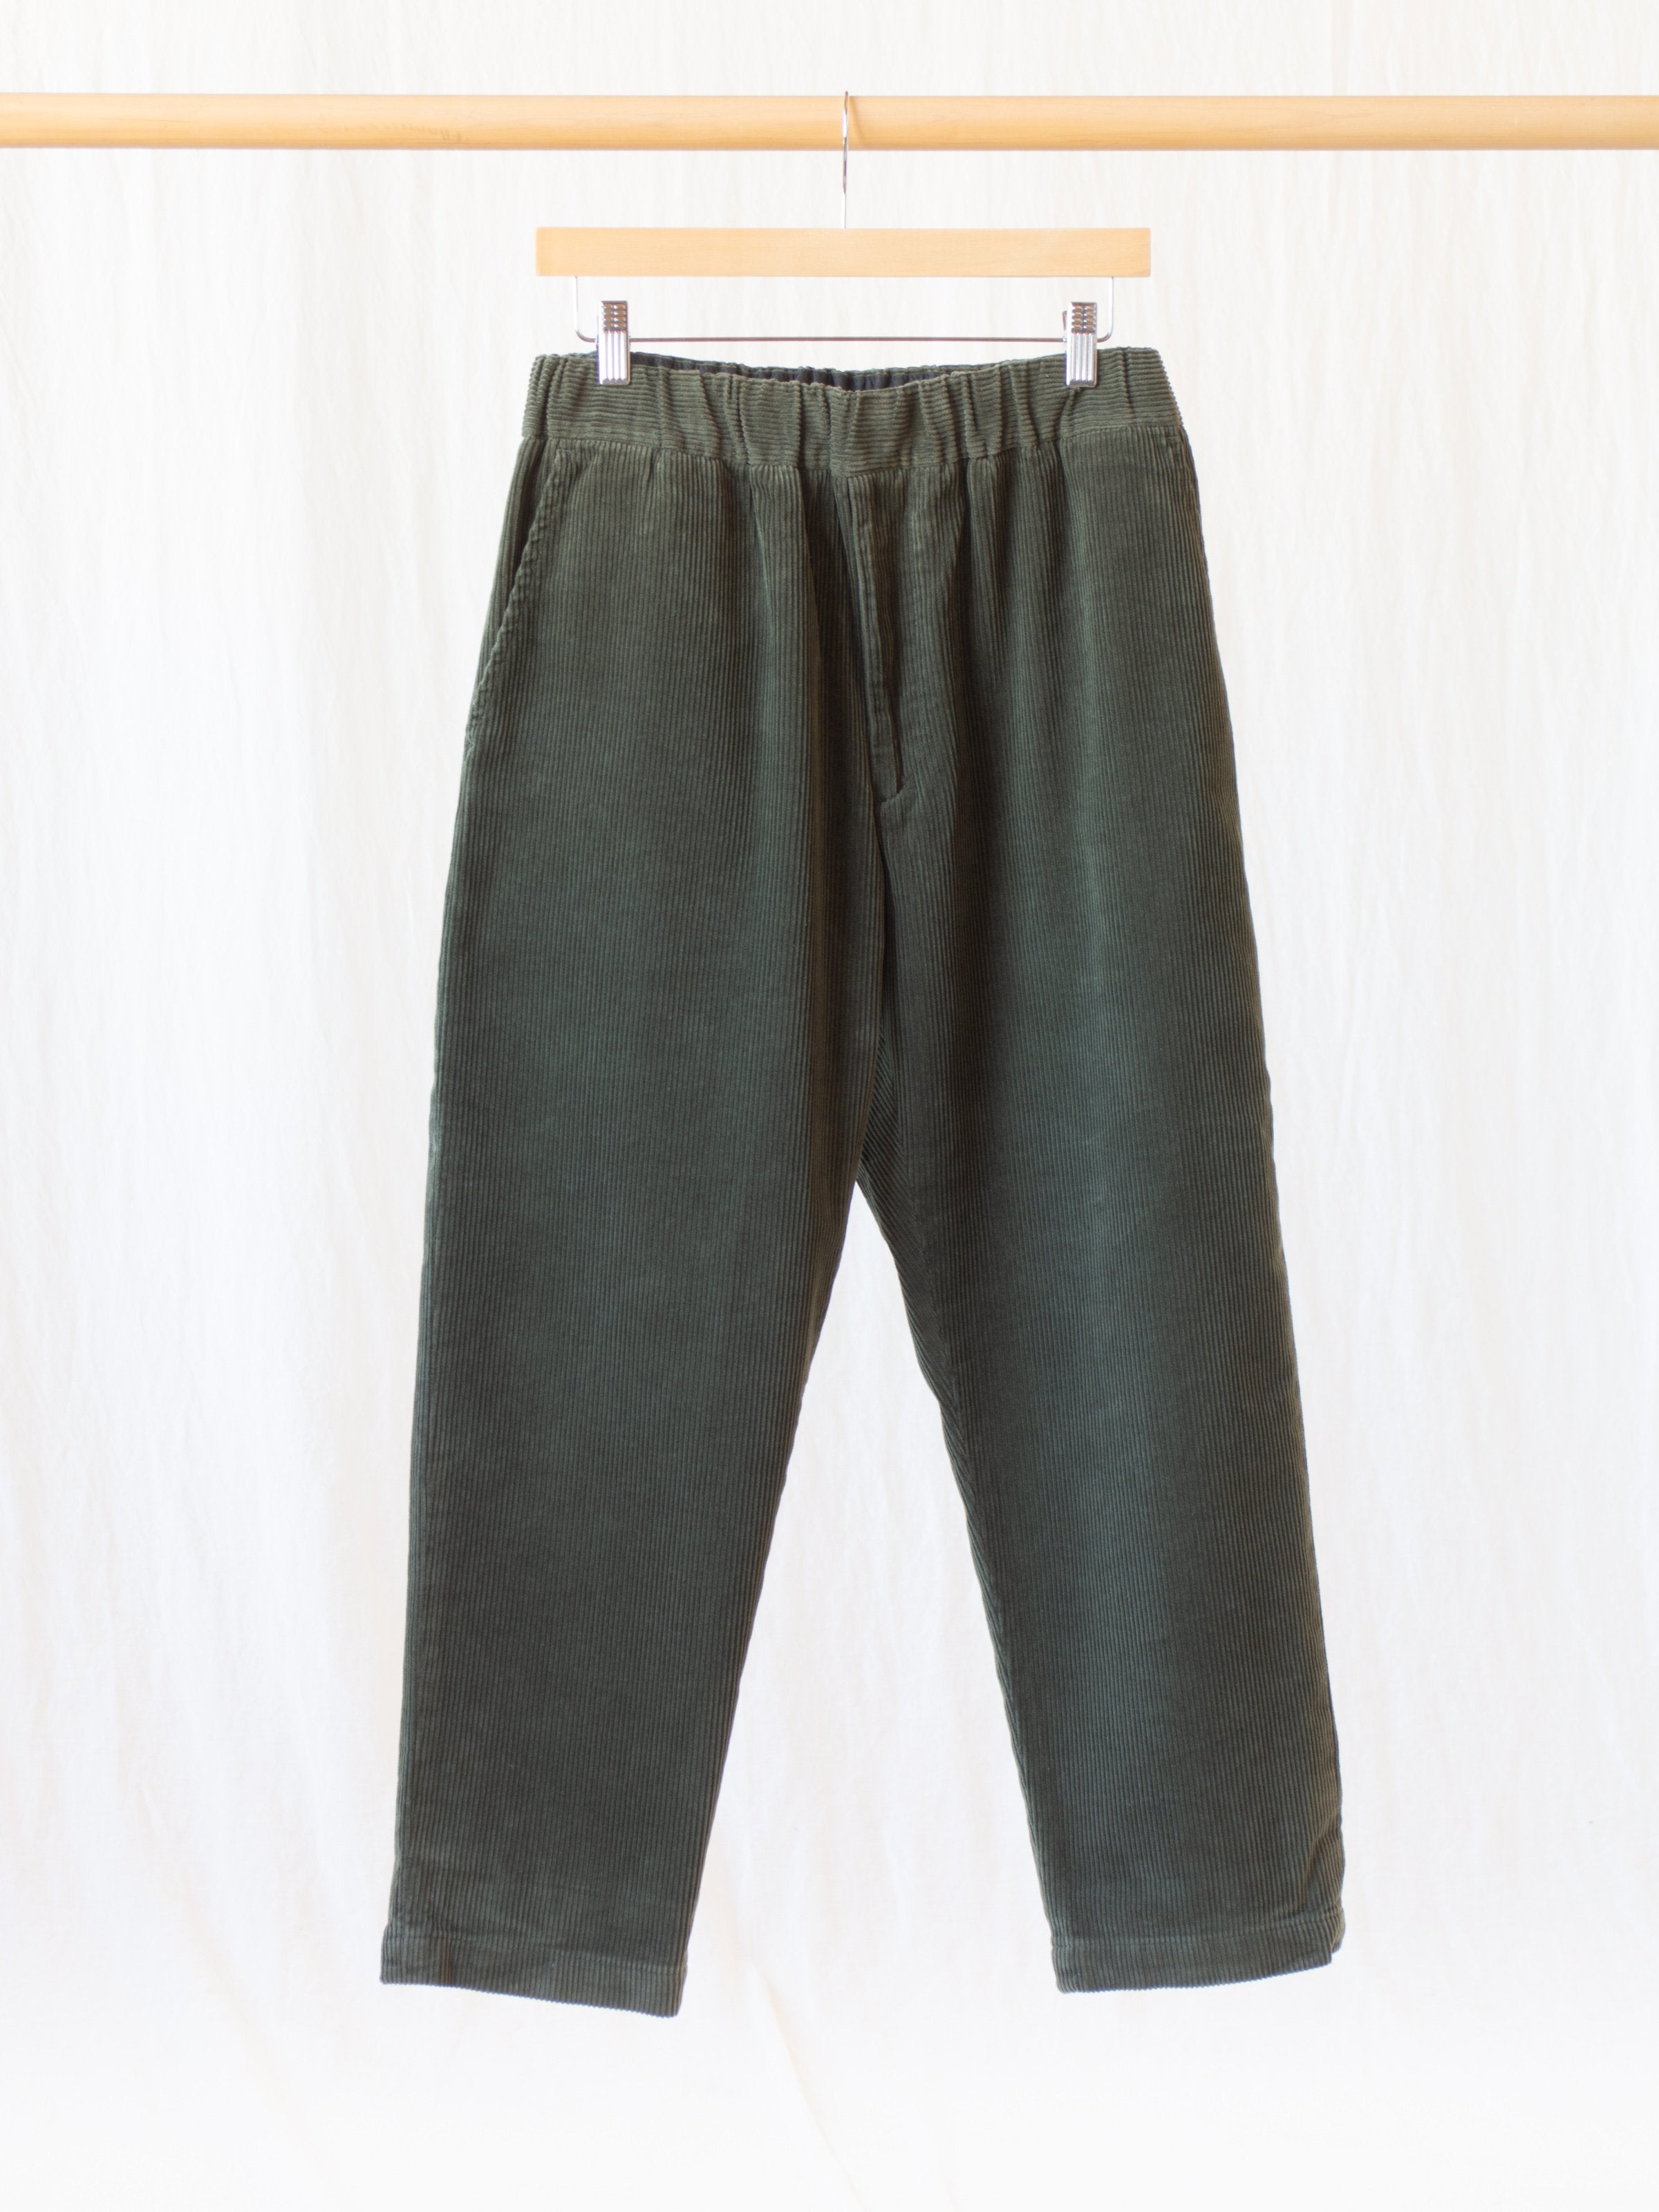 Namu Shop - Fujito Corduroy Easy Pants - Olive